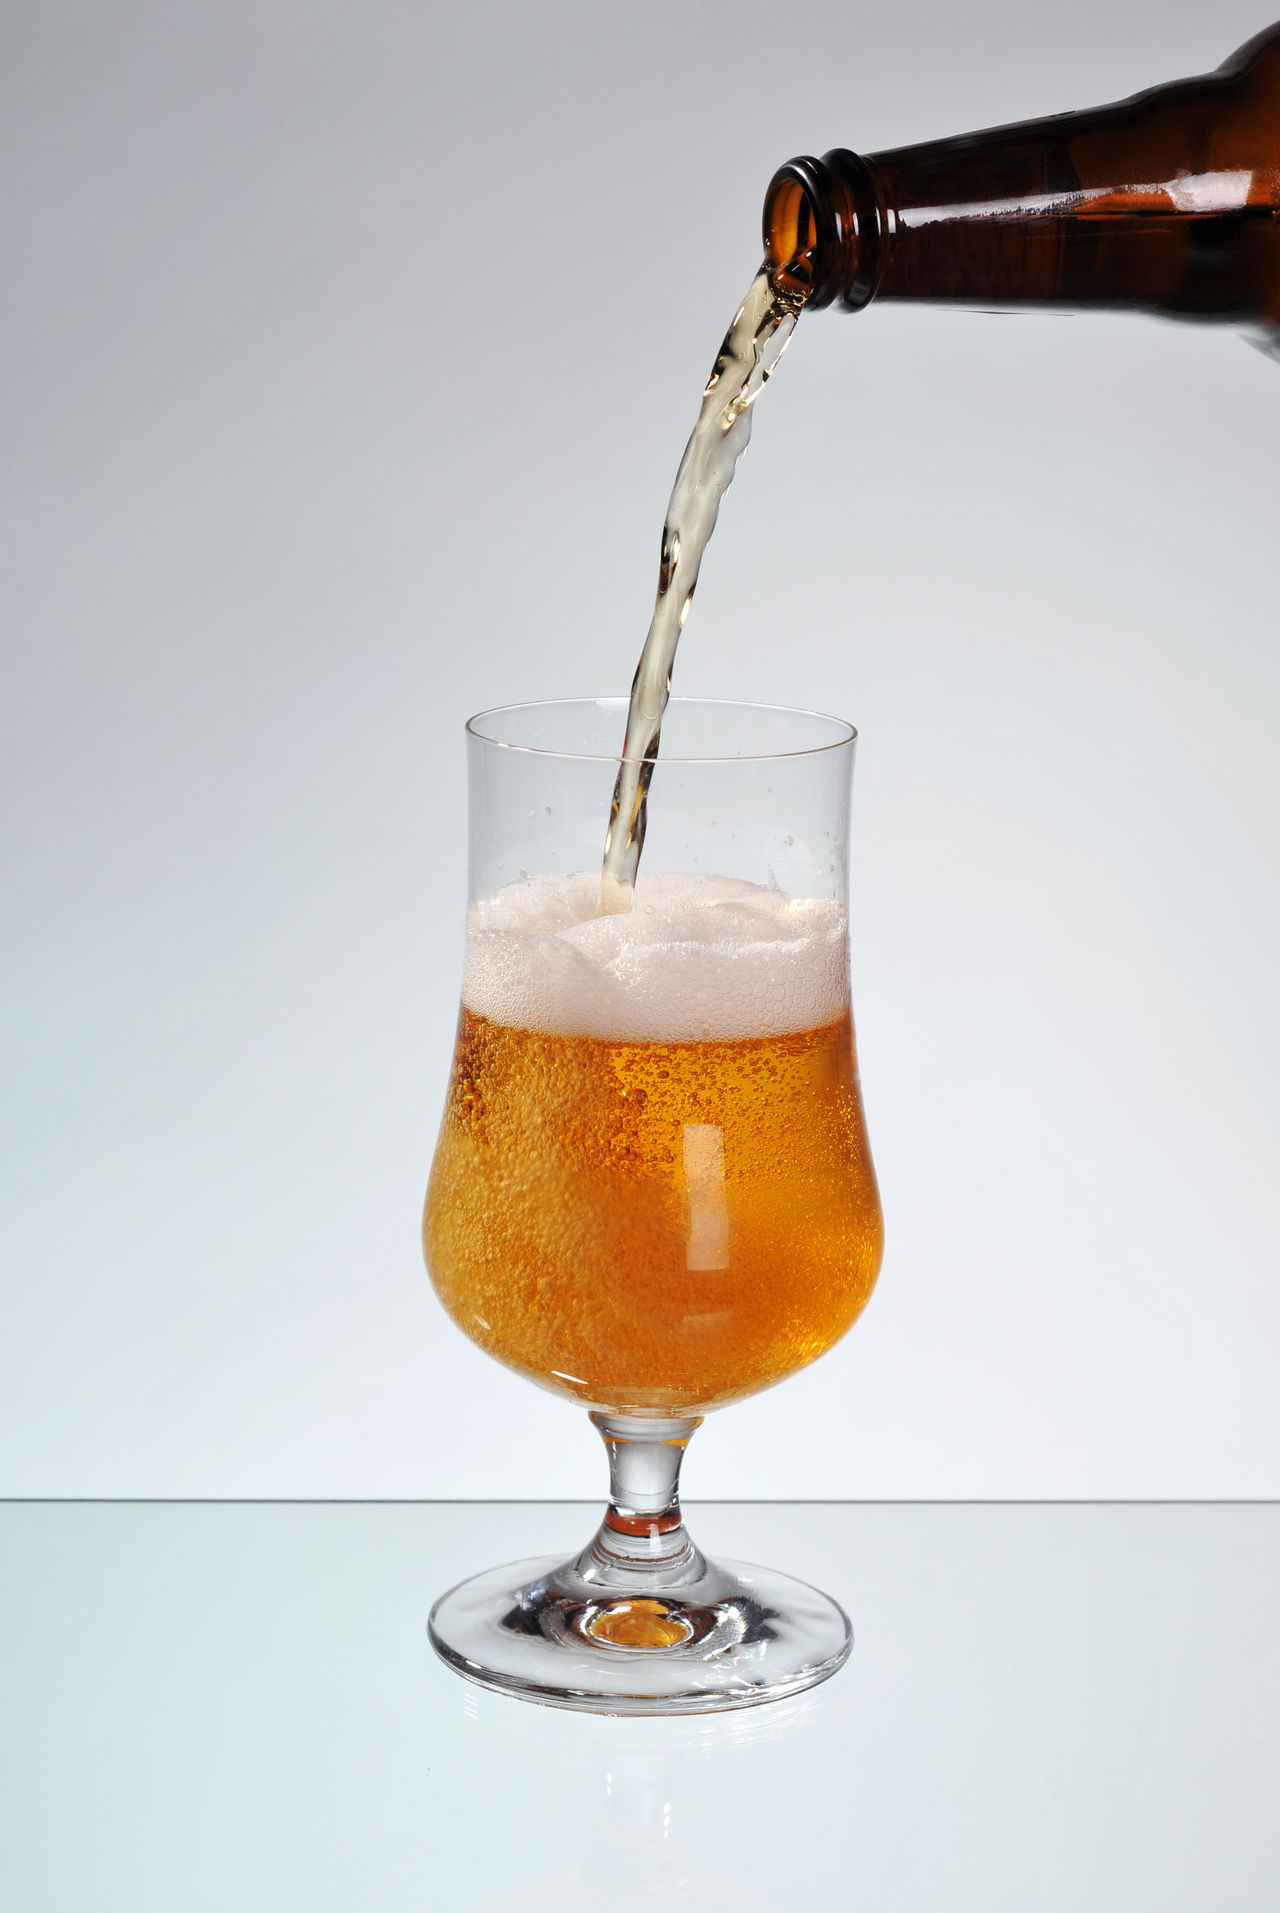 Fresh beer filling glass on stem, transparent decorative tankard. Part of brown dark bottle of alcohol beer and pouring liquid to mug making plenty bubbles of air in beer and foam. Object standing on glass table with grey background, vertical orientation, object in studio shot, nobody in frame. Alcohol Beer Beer - Alcohol Beer Glass Beverage Bottle Brew Bubble Bubbles Drink Drinking Beer Drinking Glass Filling Flowing Foam Food And Drink Froth Glass Mug No People Pour Pouring Stem Studio Shot Wallop